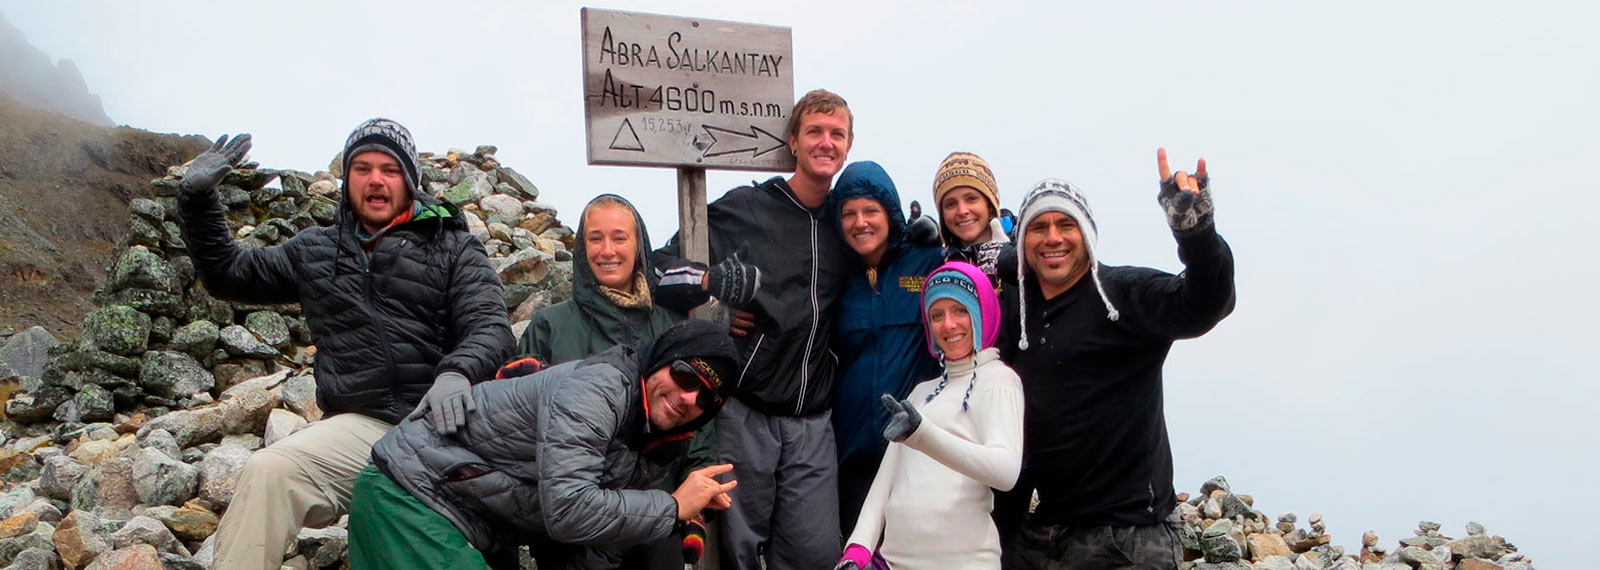 the top of the salkantay montain